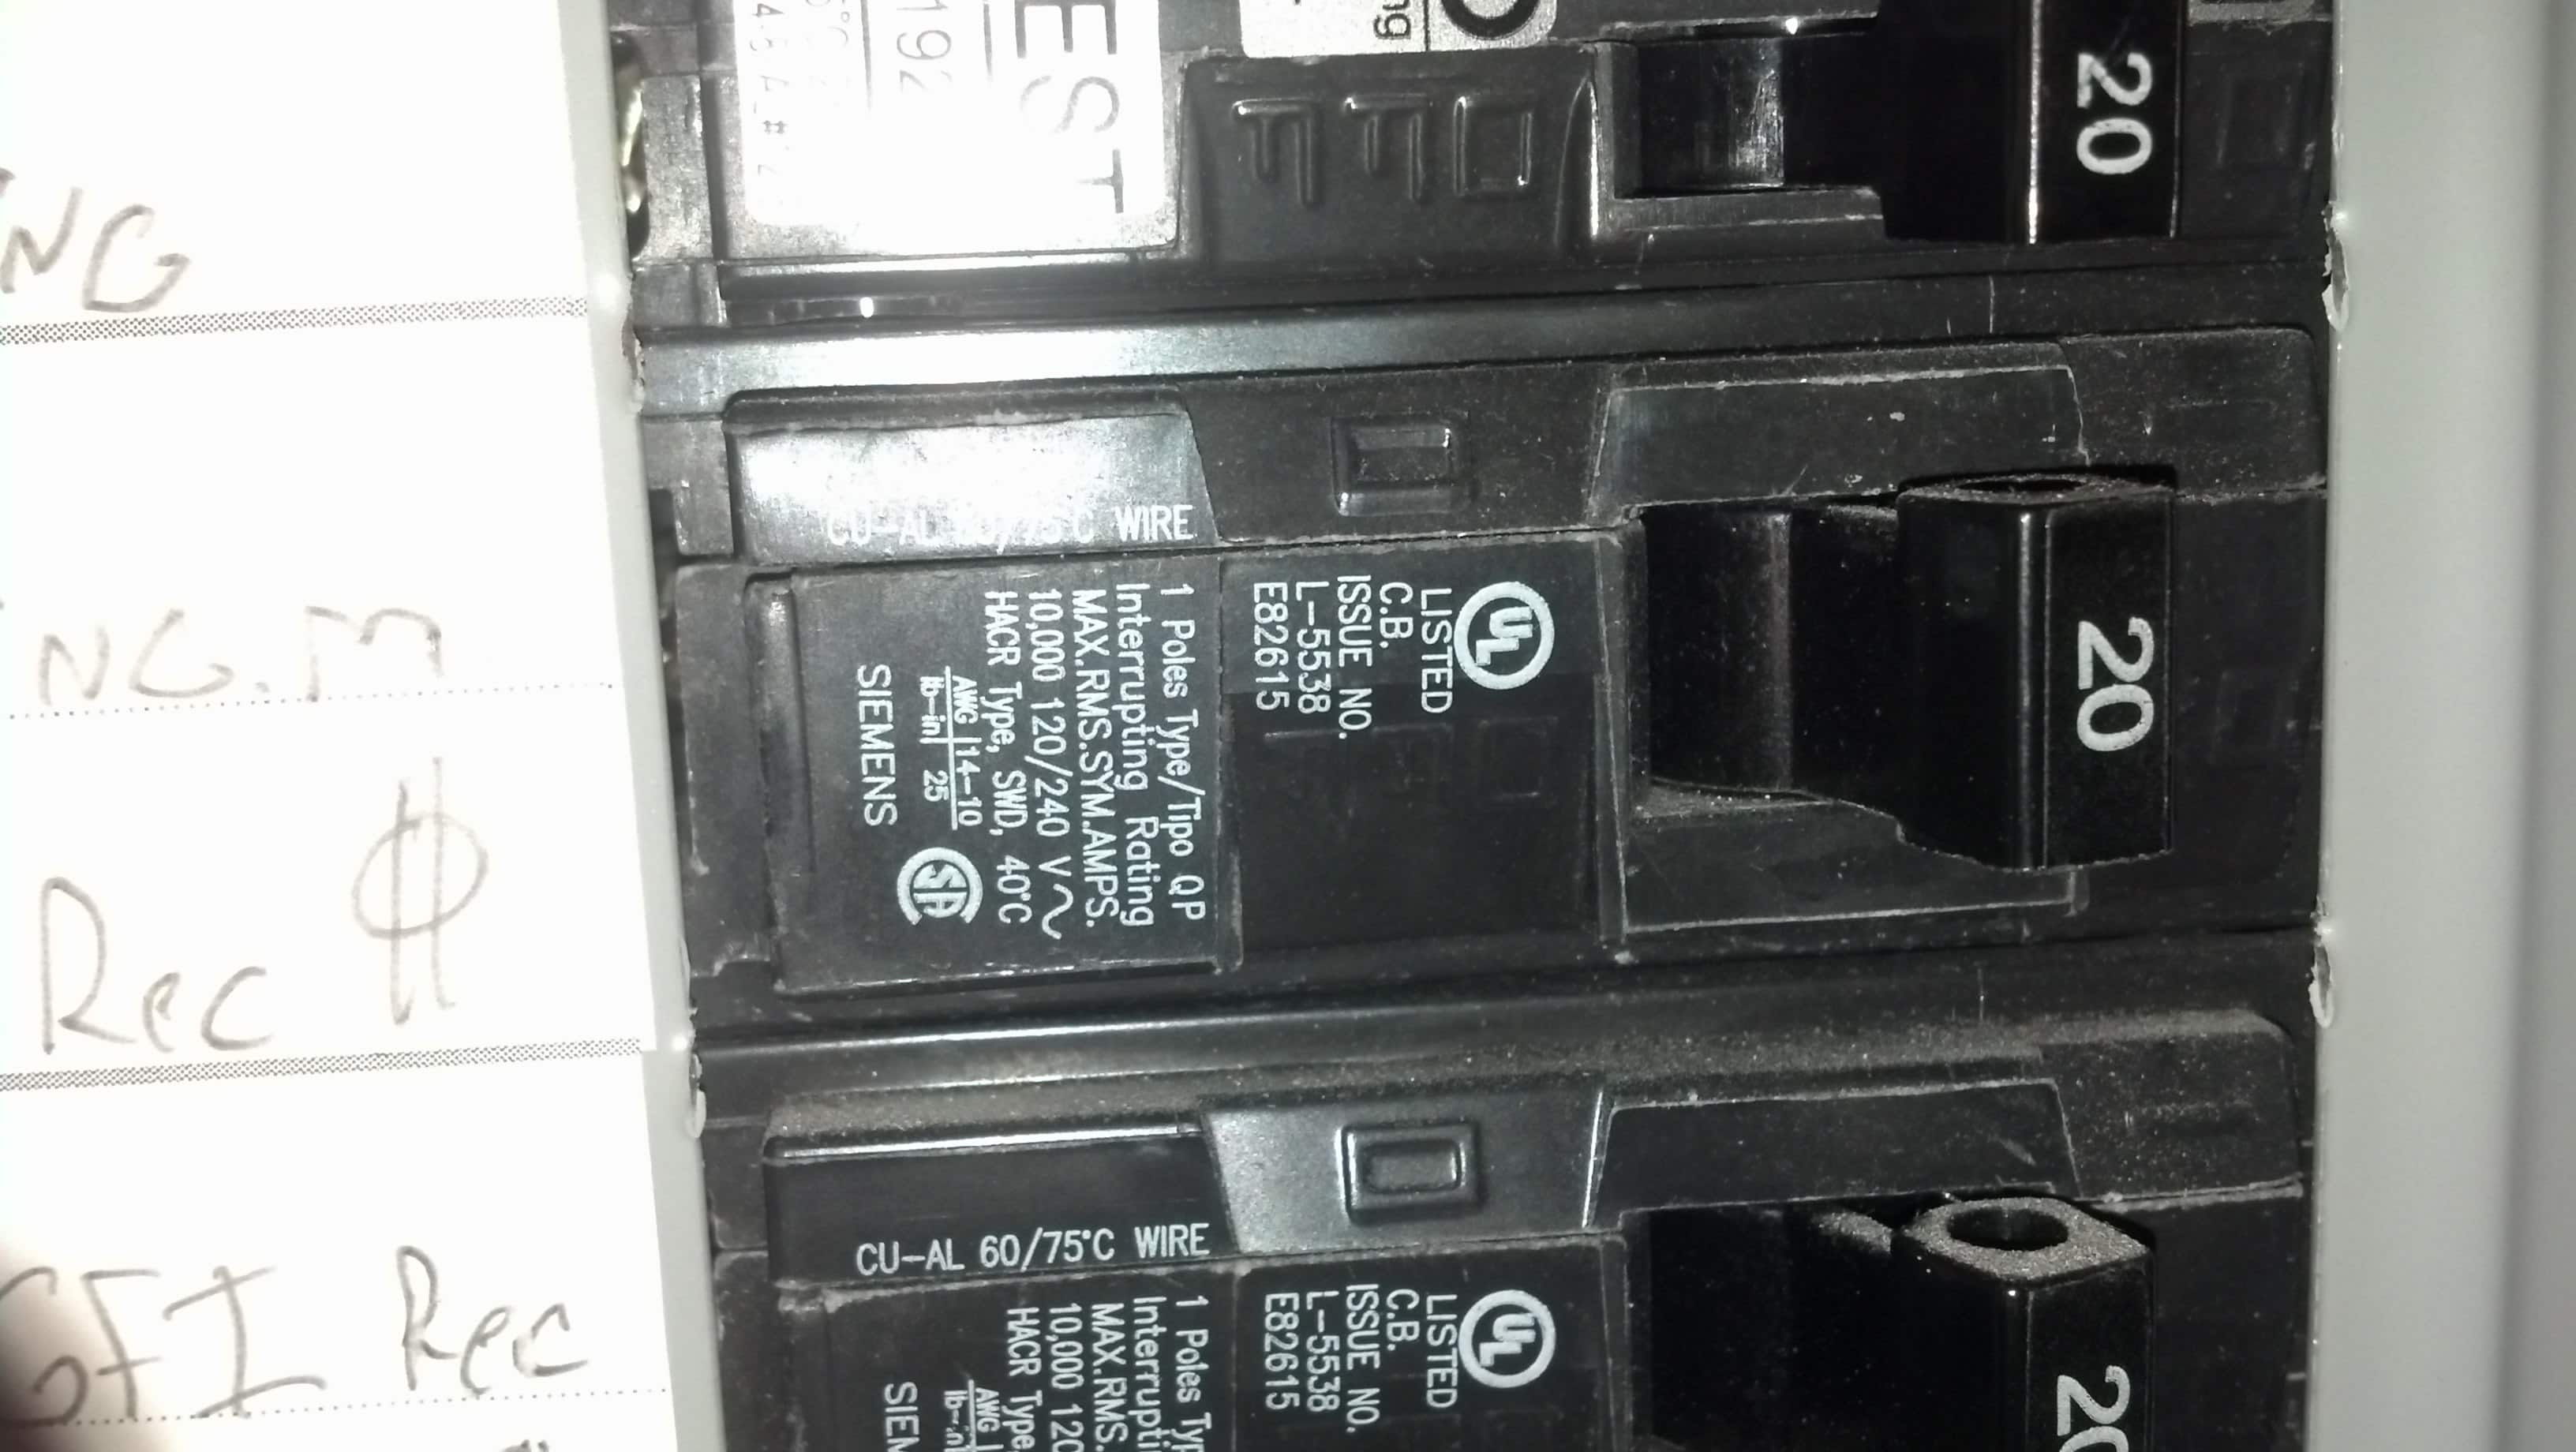 Powerline Adapters Causing Home Breakers To Trip How Do I Change A Fuse In Breaker Box